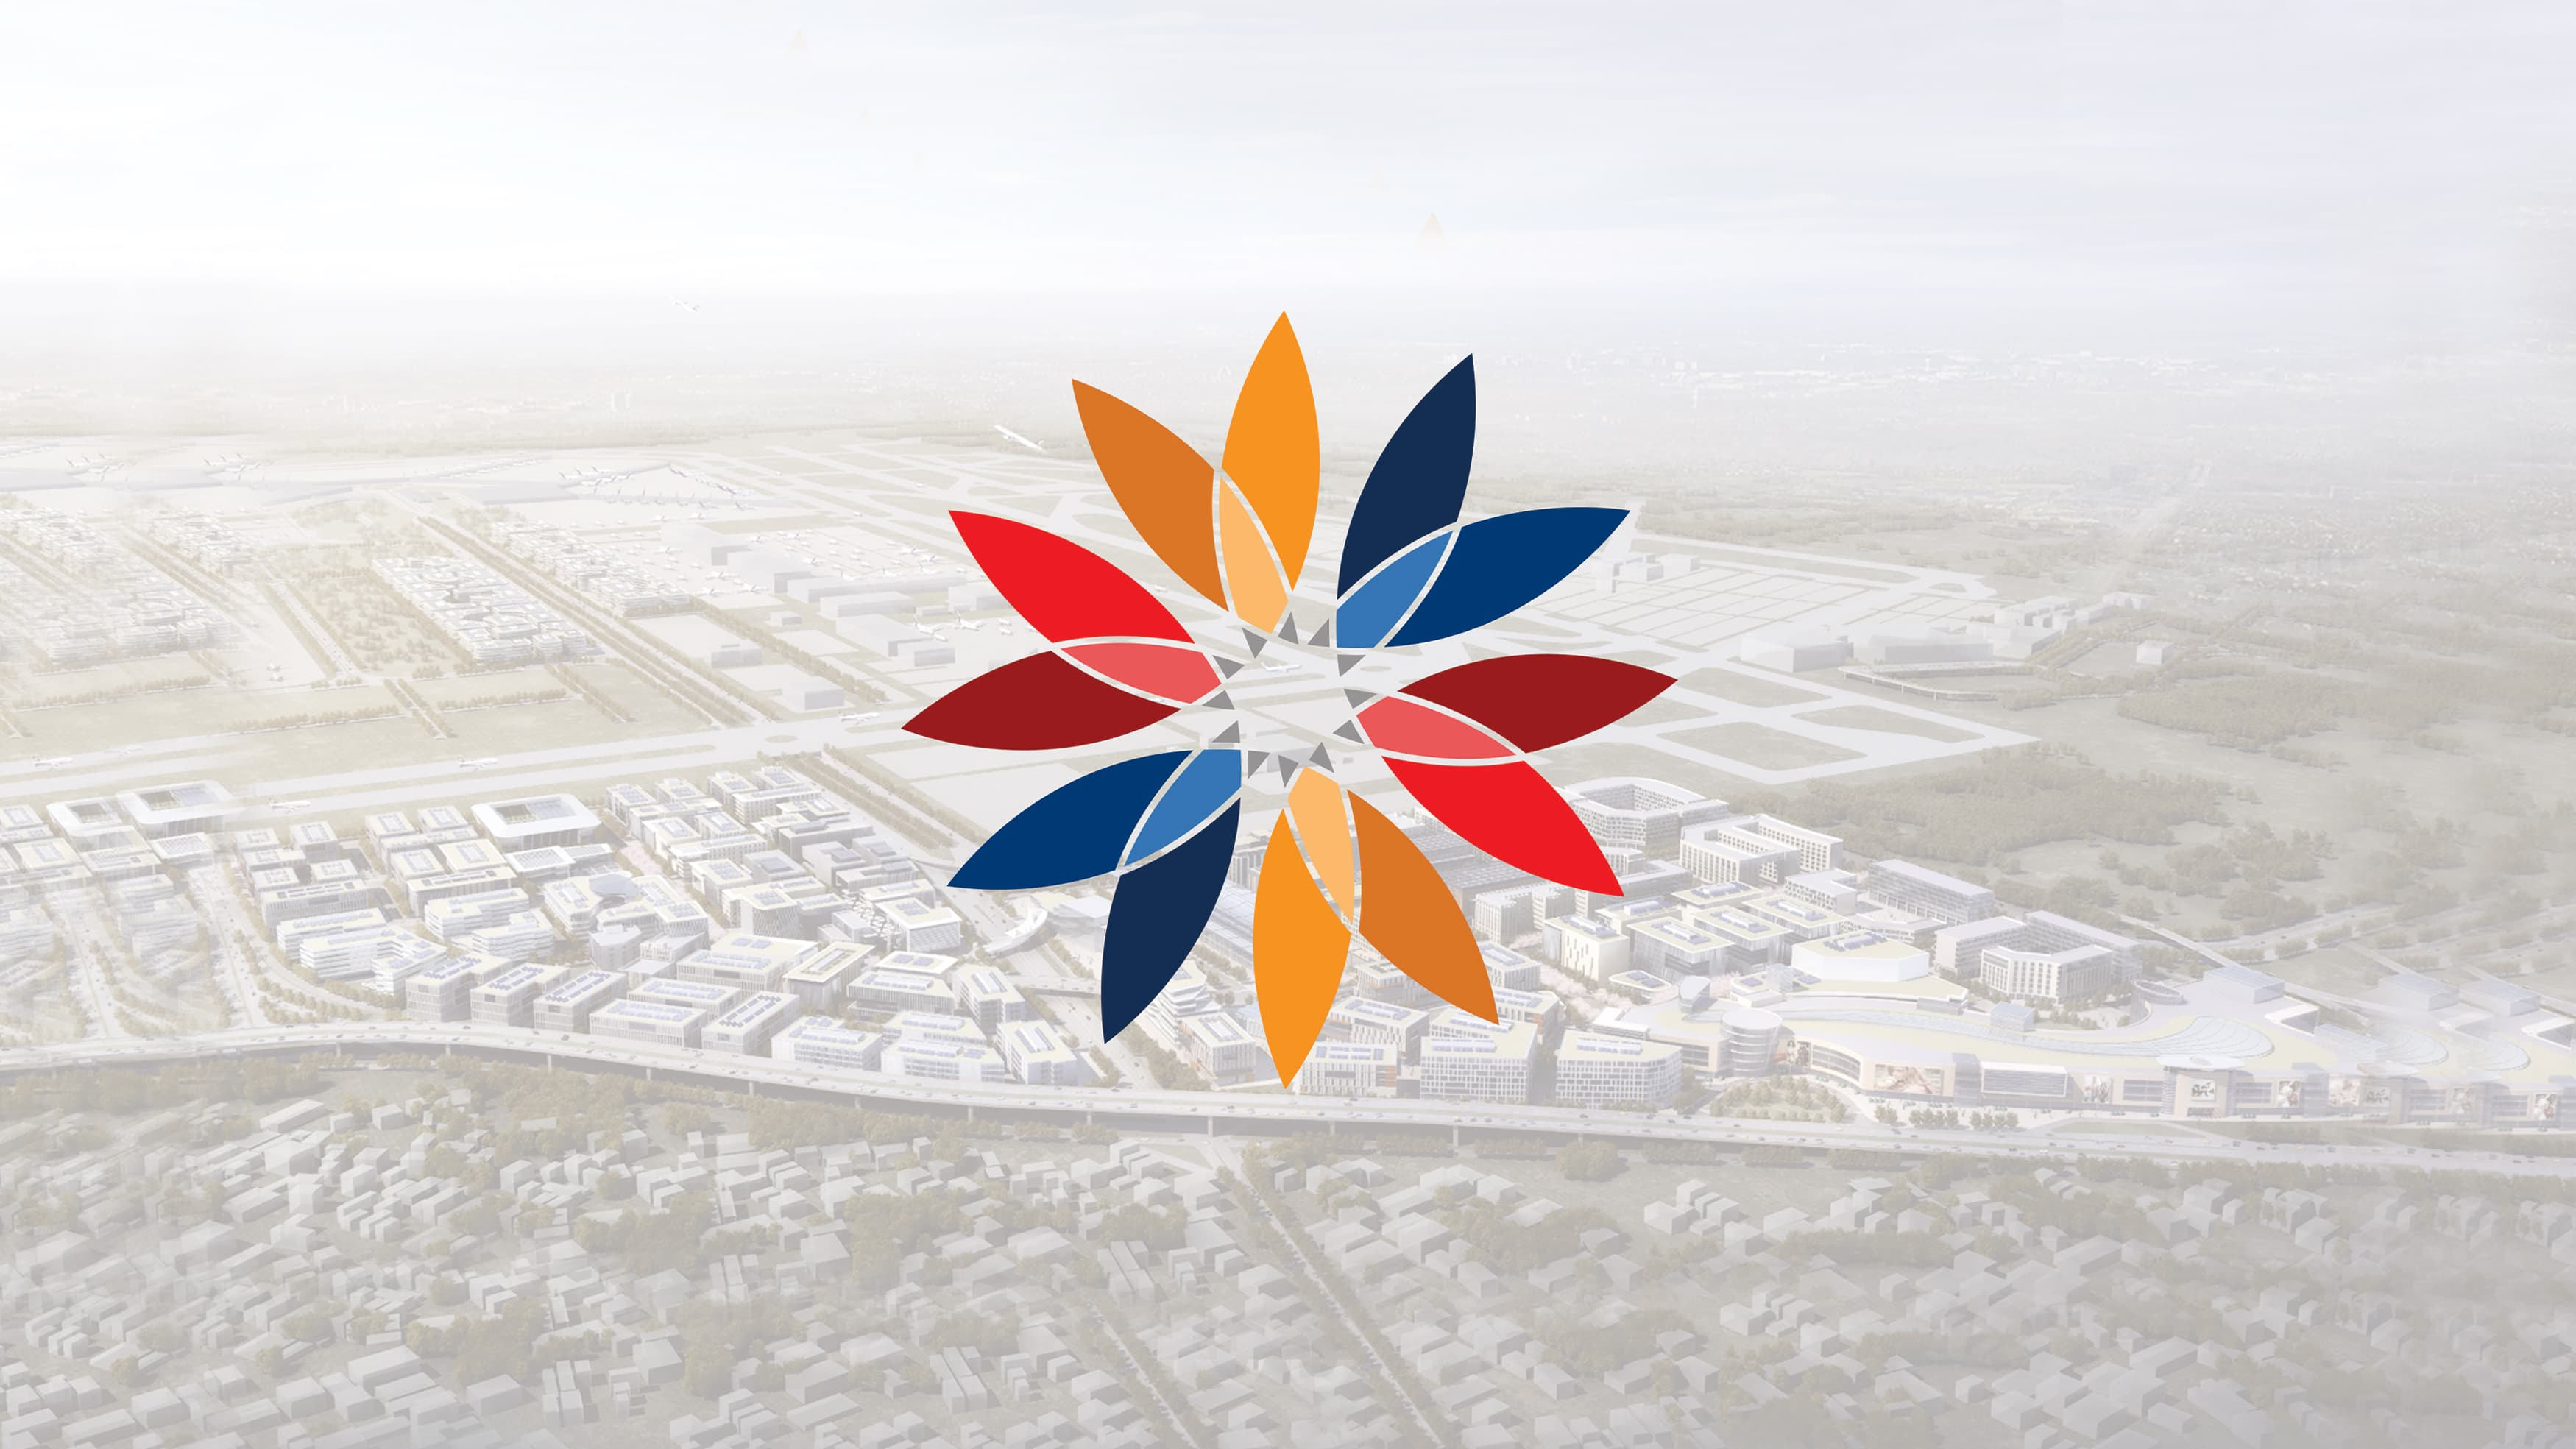 Circular kaleidoscope like logo placed on an aerial image of a city.